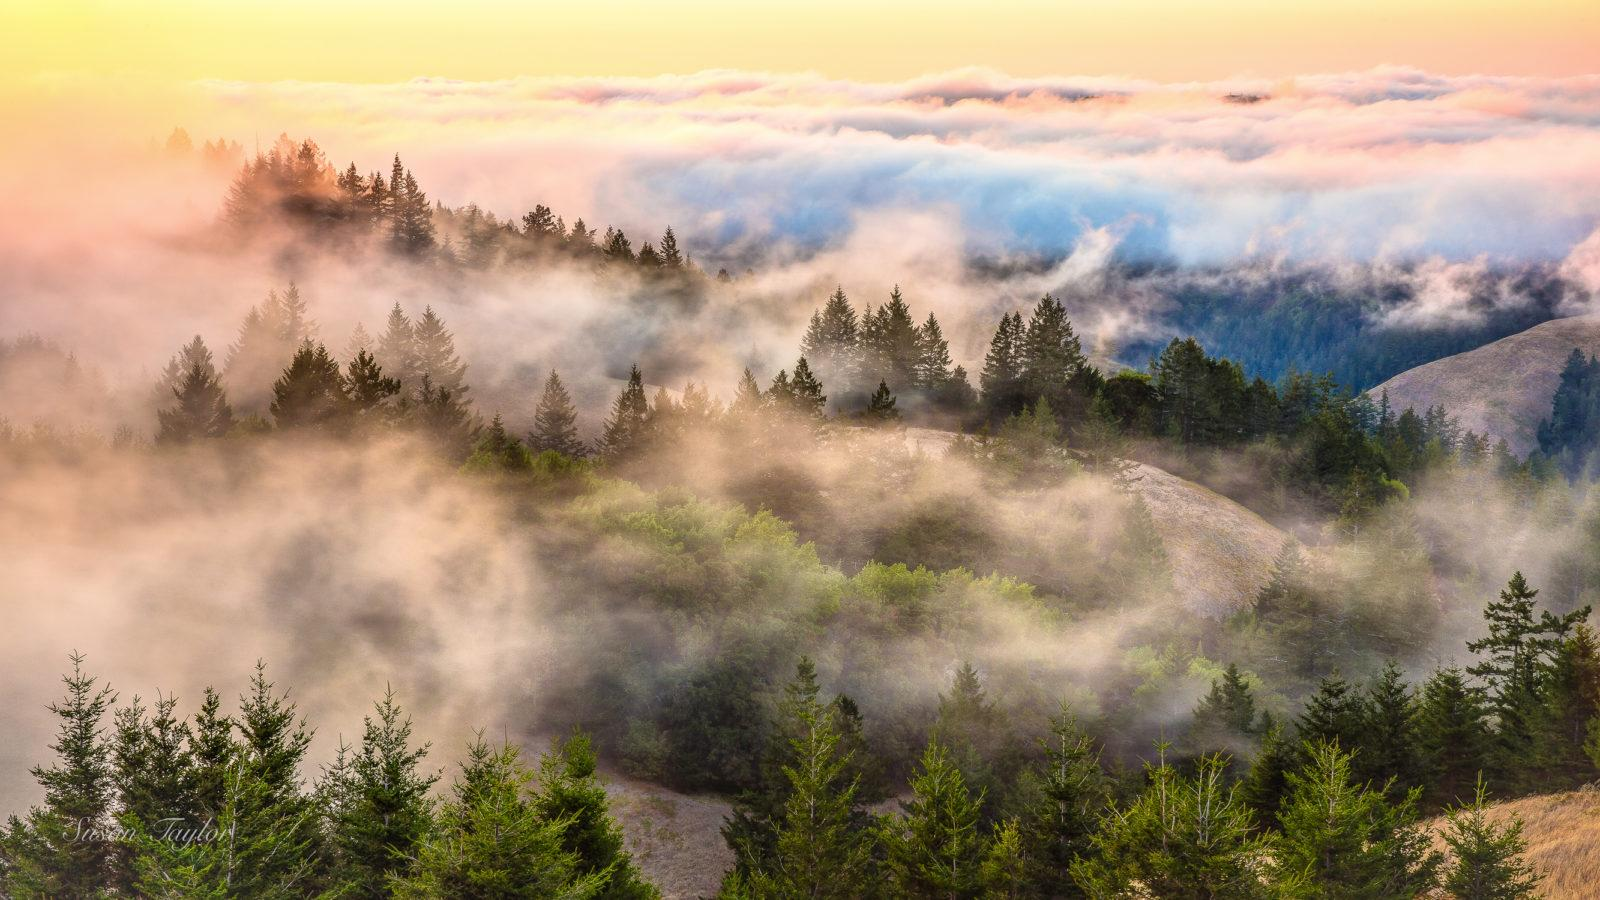 Today's Photo Of The Day is Coastal Fog Over Mount Tamalpais by Susan Taylor. Location: Mount Tamalpais State Park, CA.